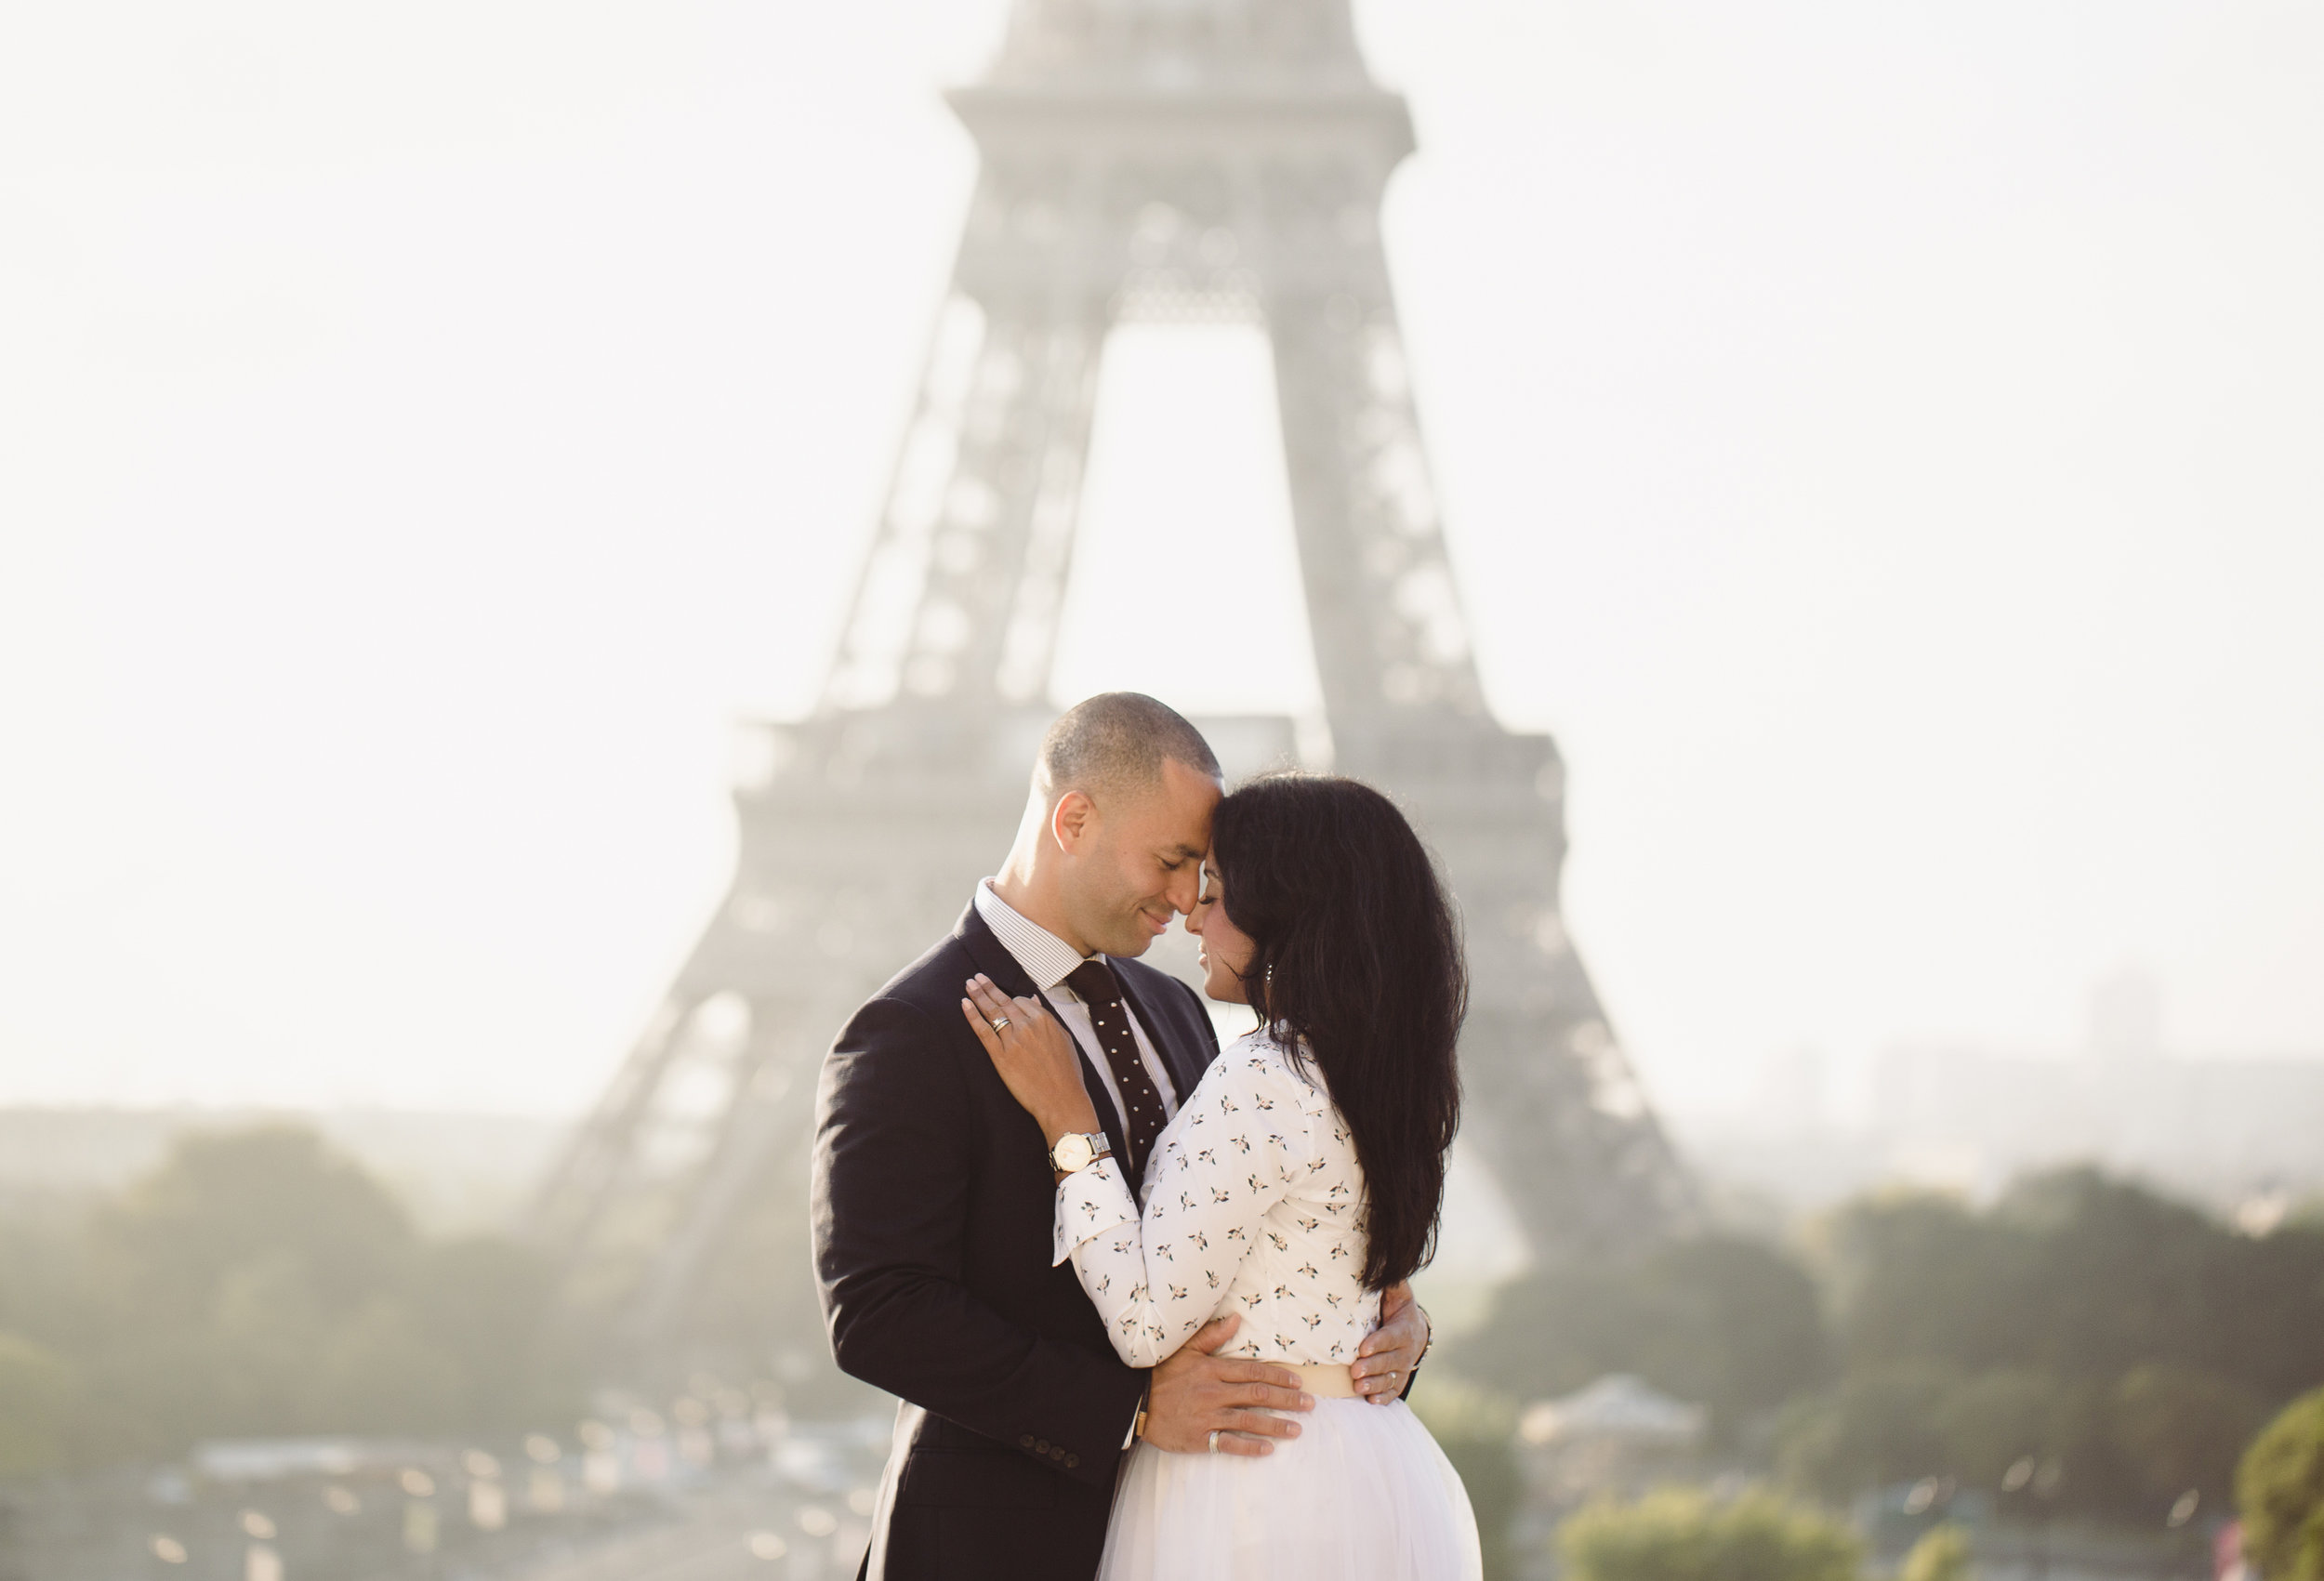 Engagement Photography Eiffel Tower_Professional Photographer Paris .jpg